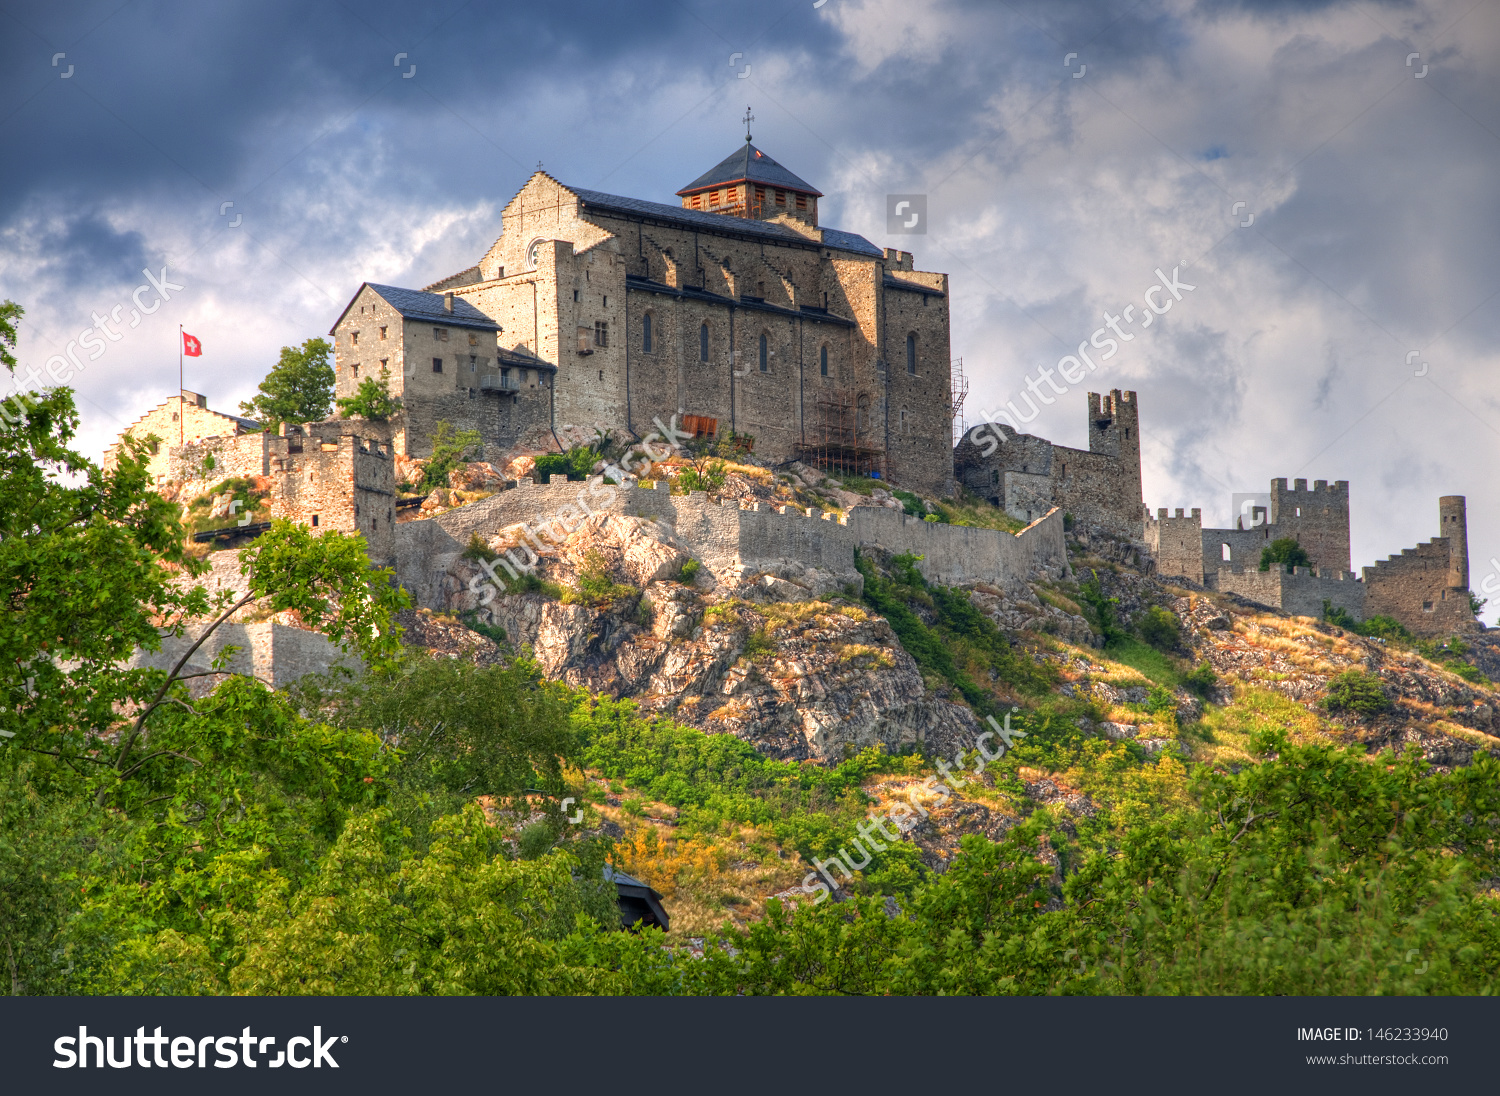 Valere Basilica Tourbillon Castle Sion Switzerland Stock Photo.